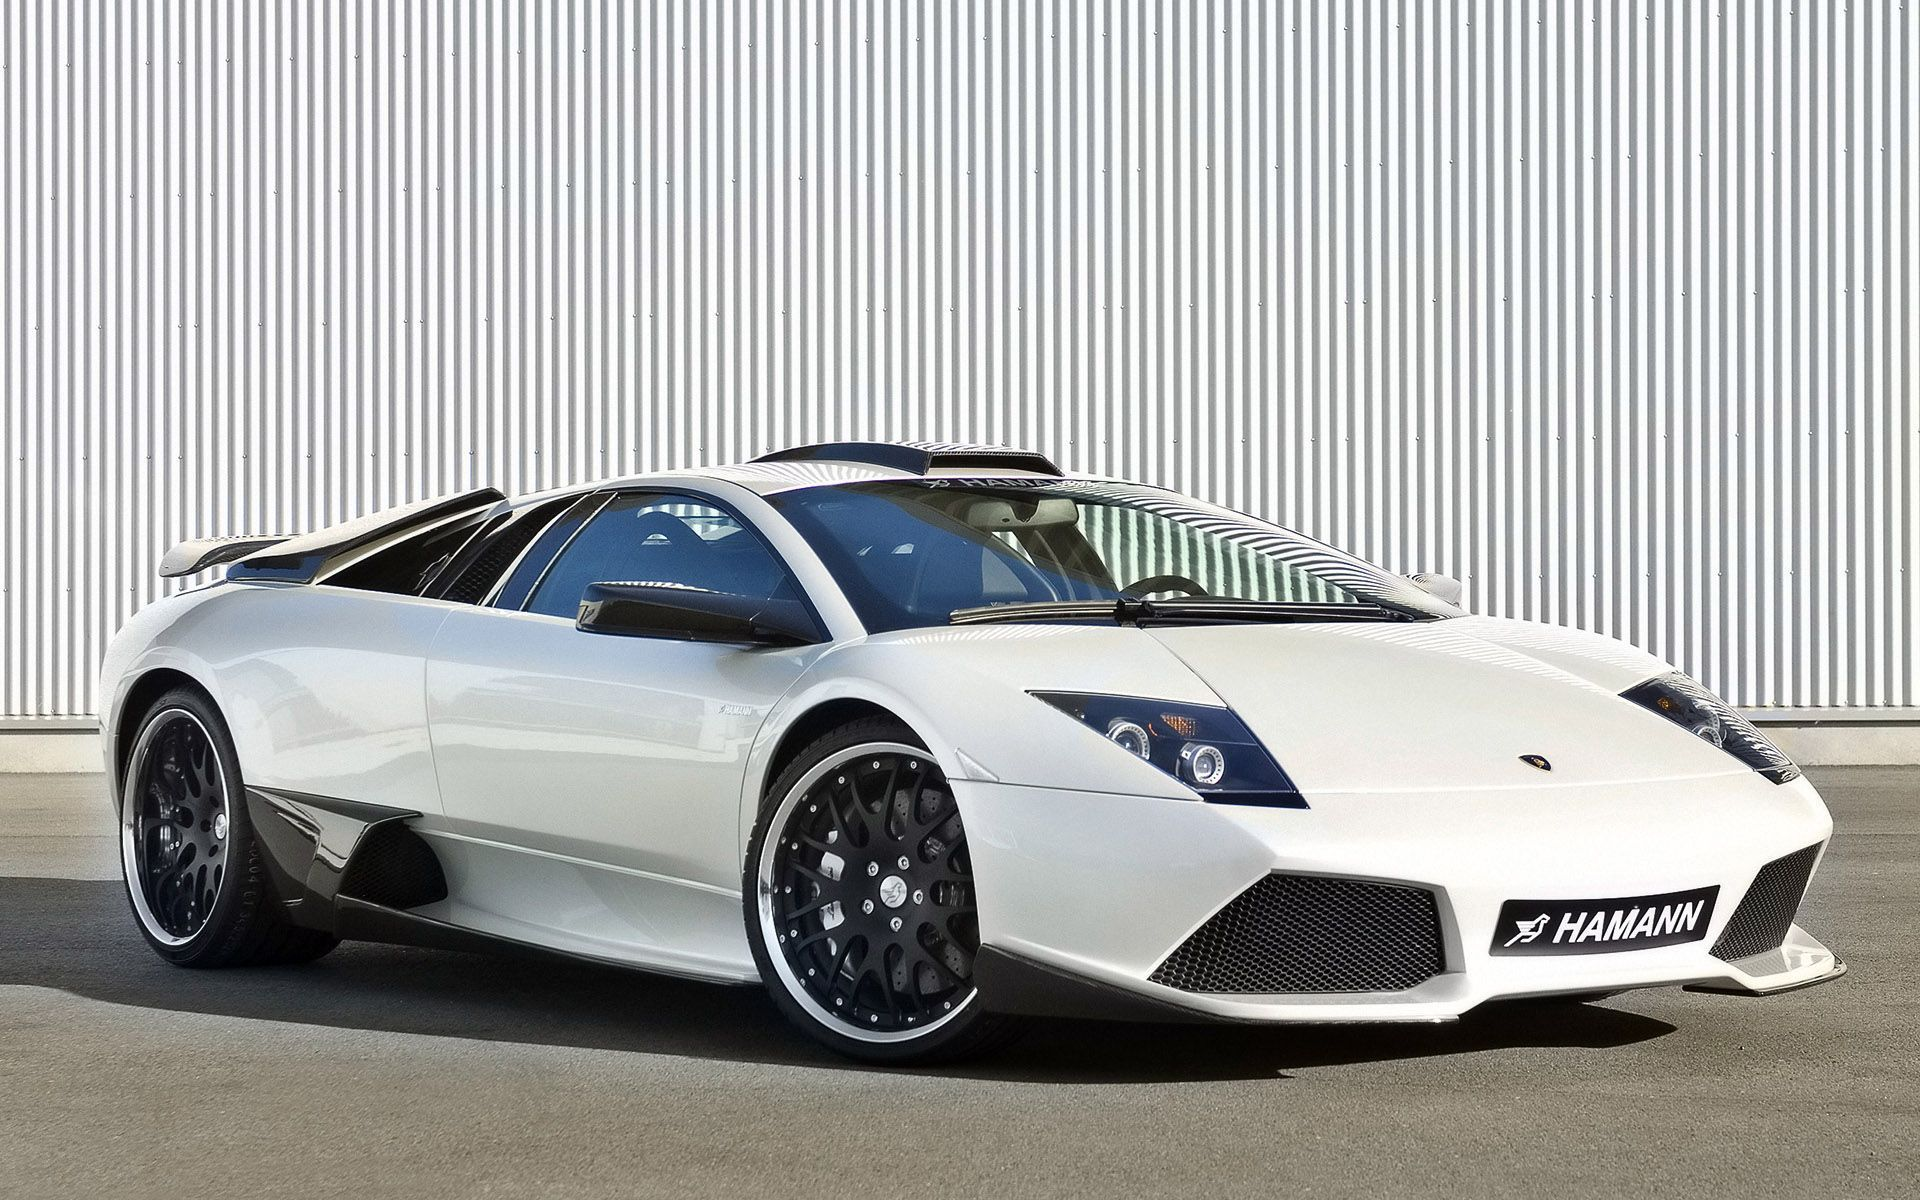 lamborghini cars wallpaper backgrounds 1920x1200 1920x1200